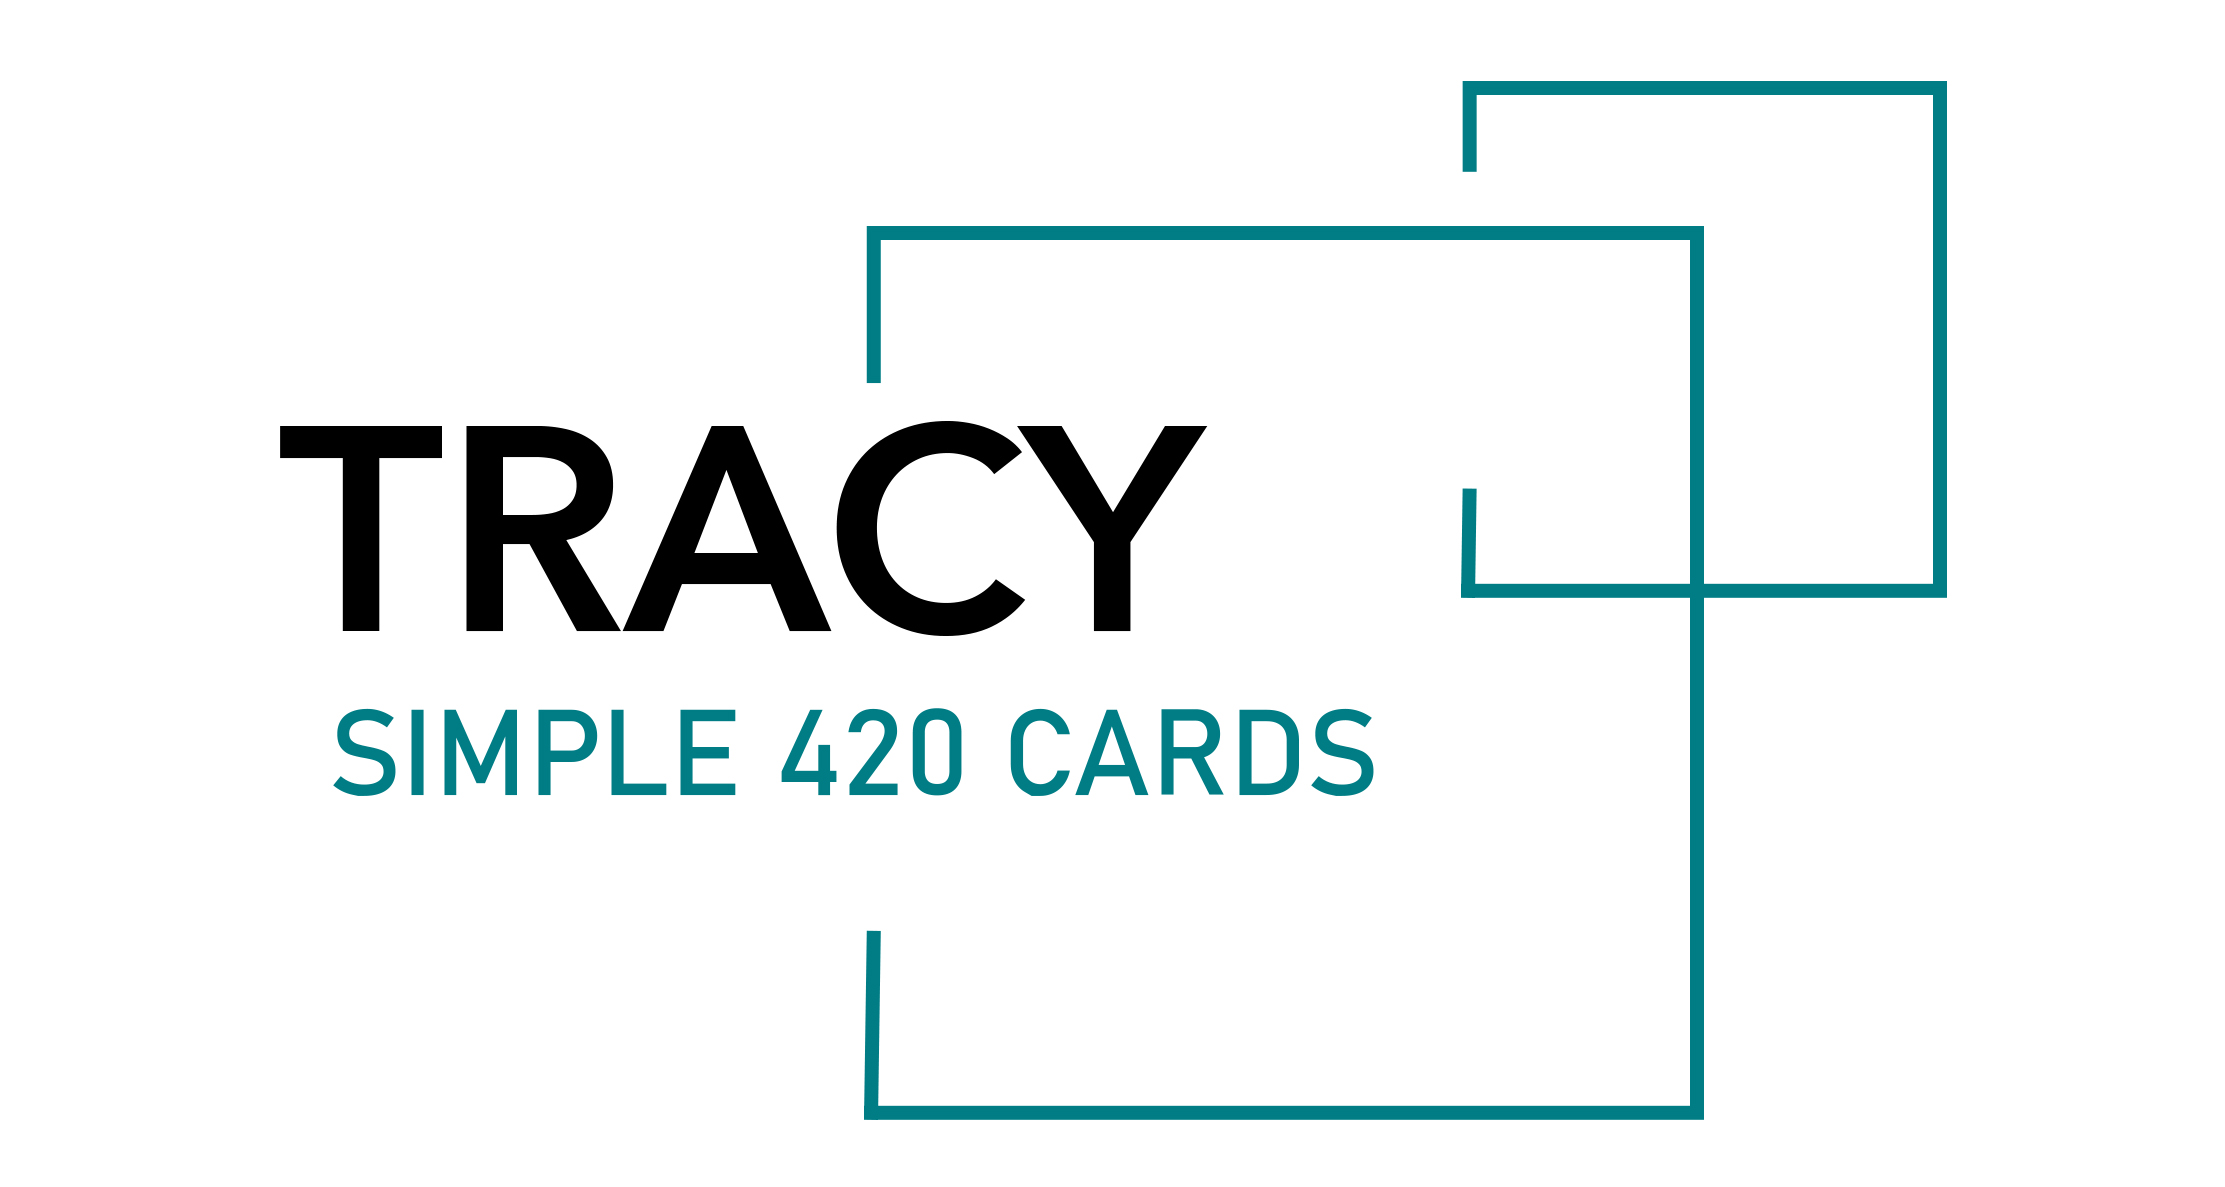 Tracy Simple 420 Cards